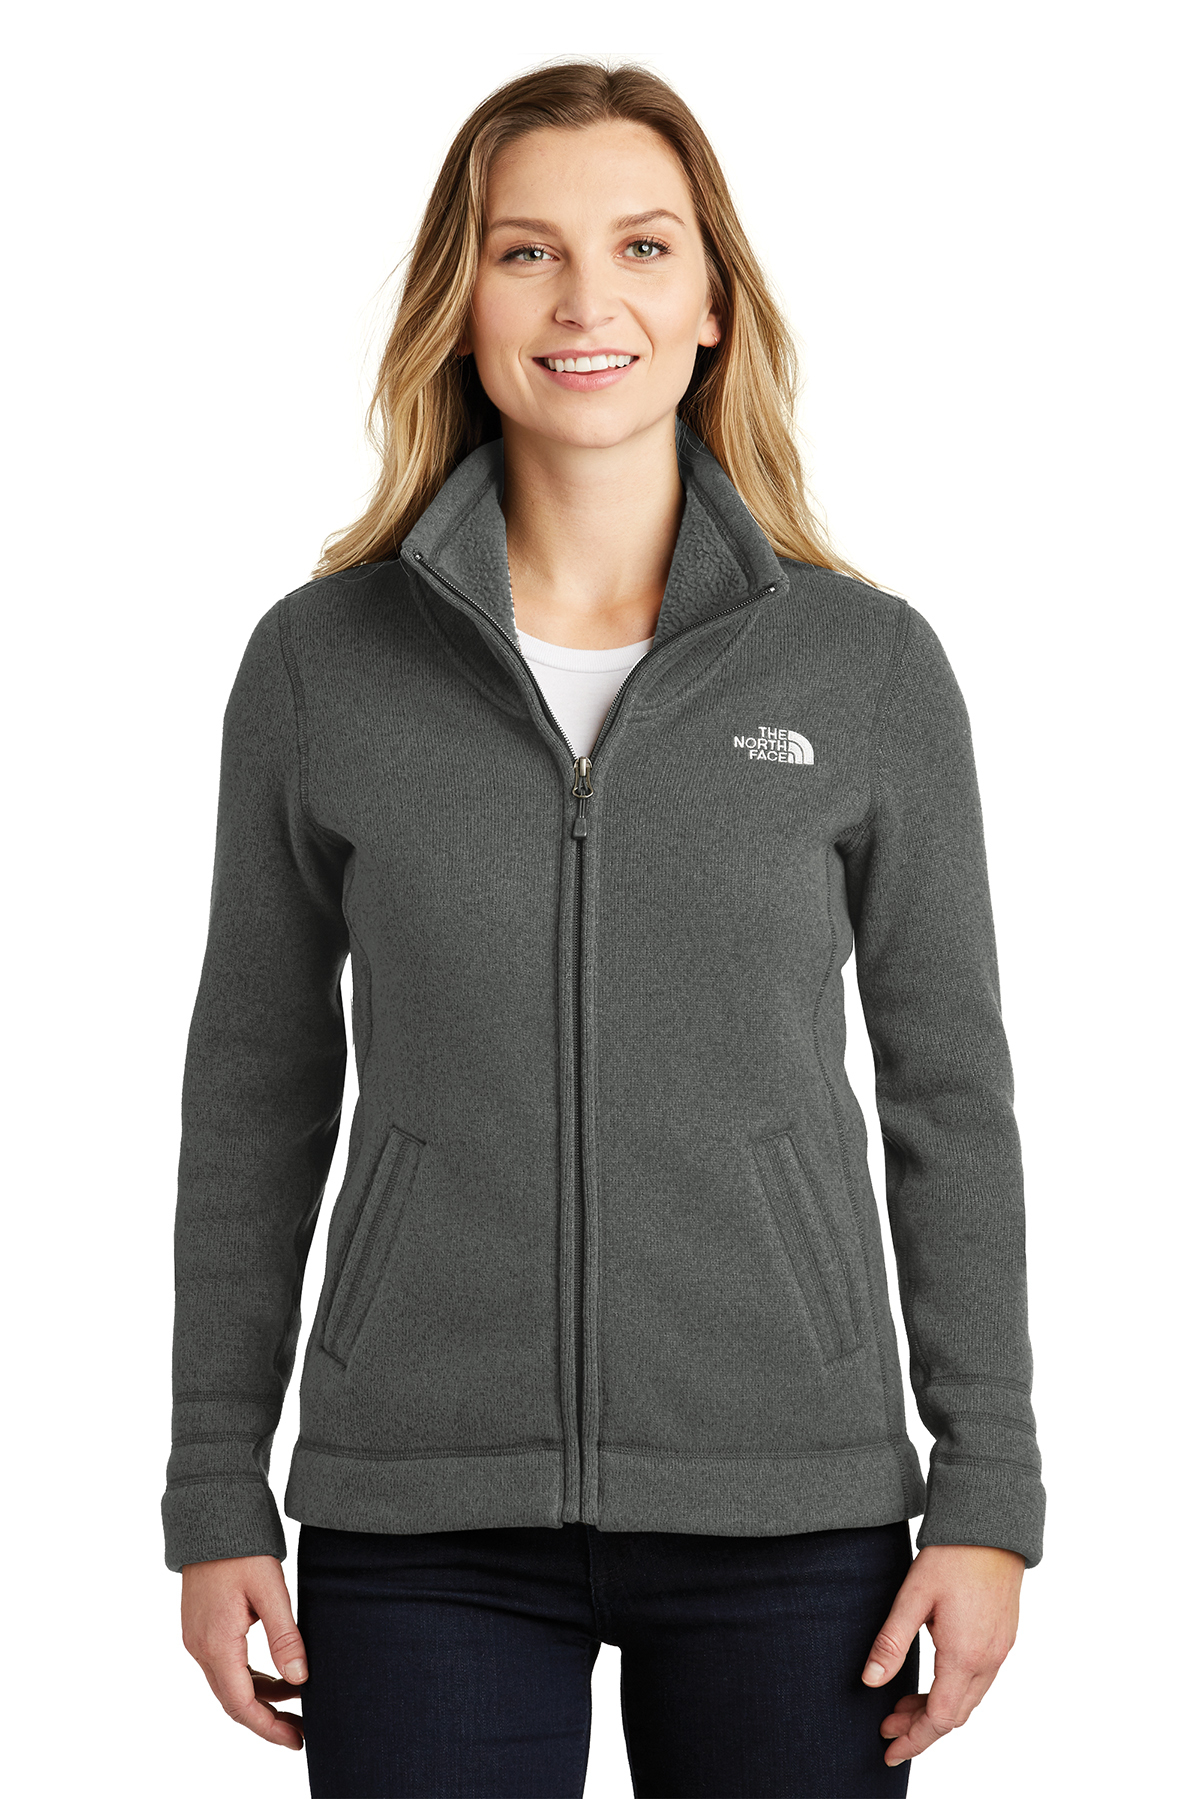 961d1be9d621 The North Face® NF0A3LH8 - Ladies Sweater Fleece Jacket  94.05 ...